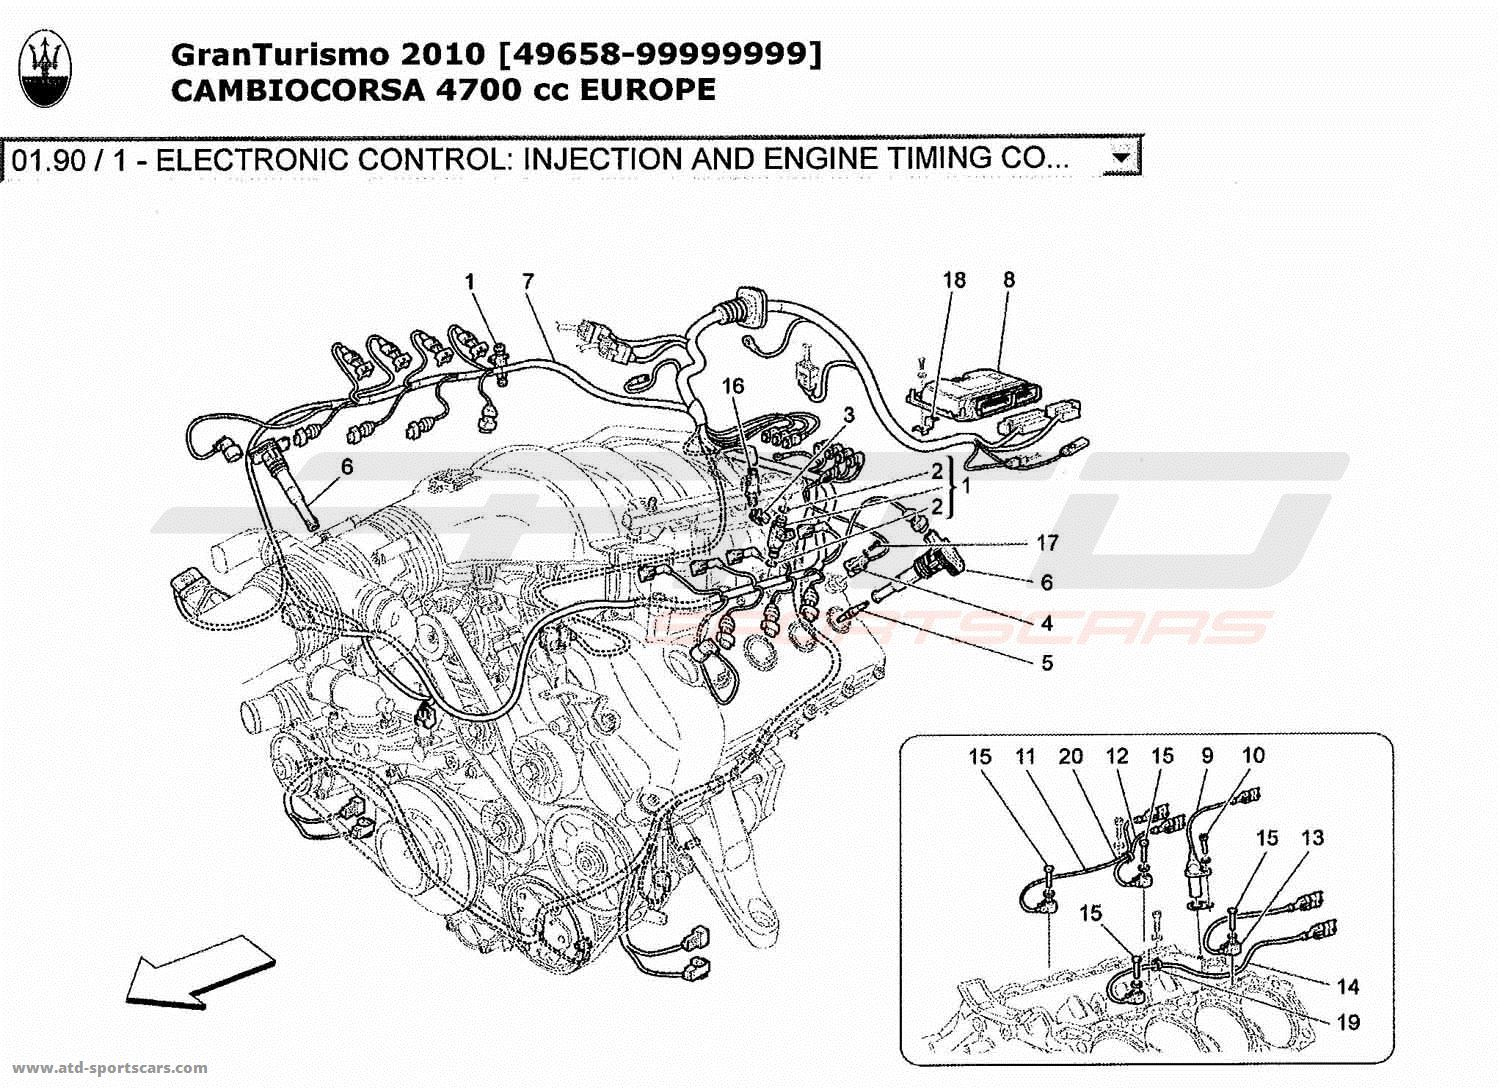 Maserati Ghibli Fuse Diagram as well Maserati Coupe Tail Lights Wiring Diagrams moreover Crank Sensor Location 68932 likewise How To Fix Short In A Wiring Whell Speed Sensor 2008 Volvo V50 in addition Maserati Quattroporte Parts Diagram Html. on 2005 maserati quattroporte wiring diagrams